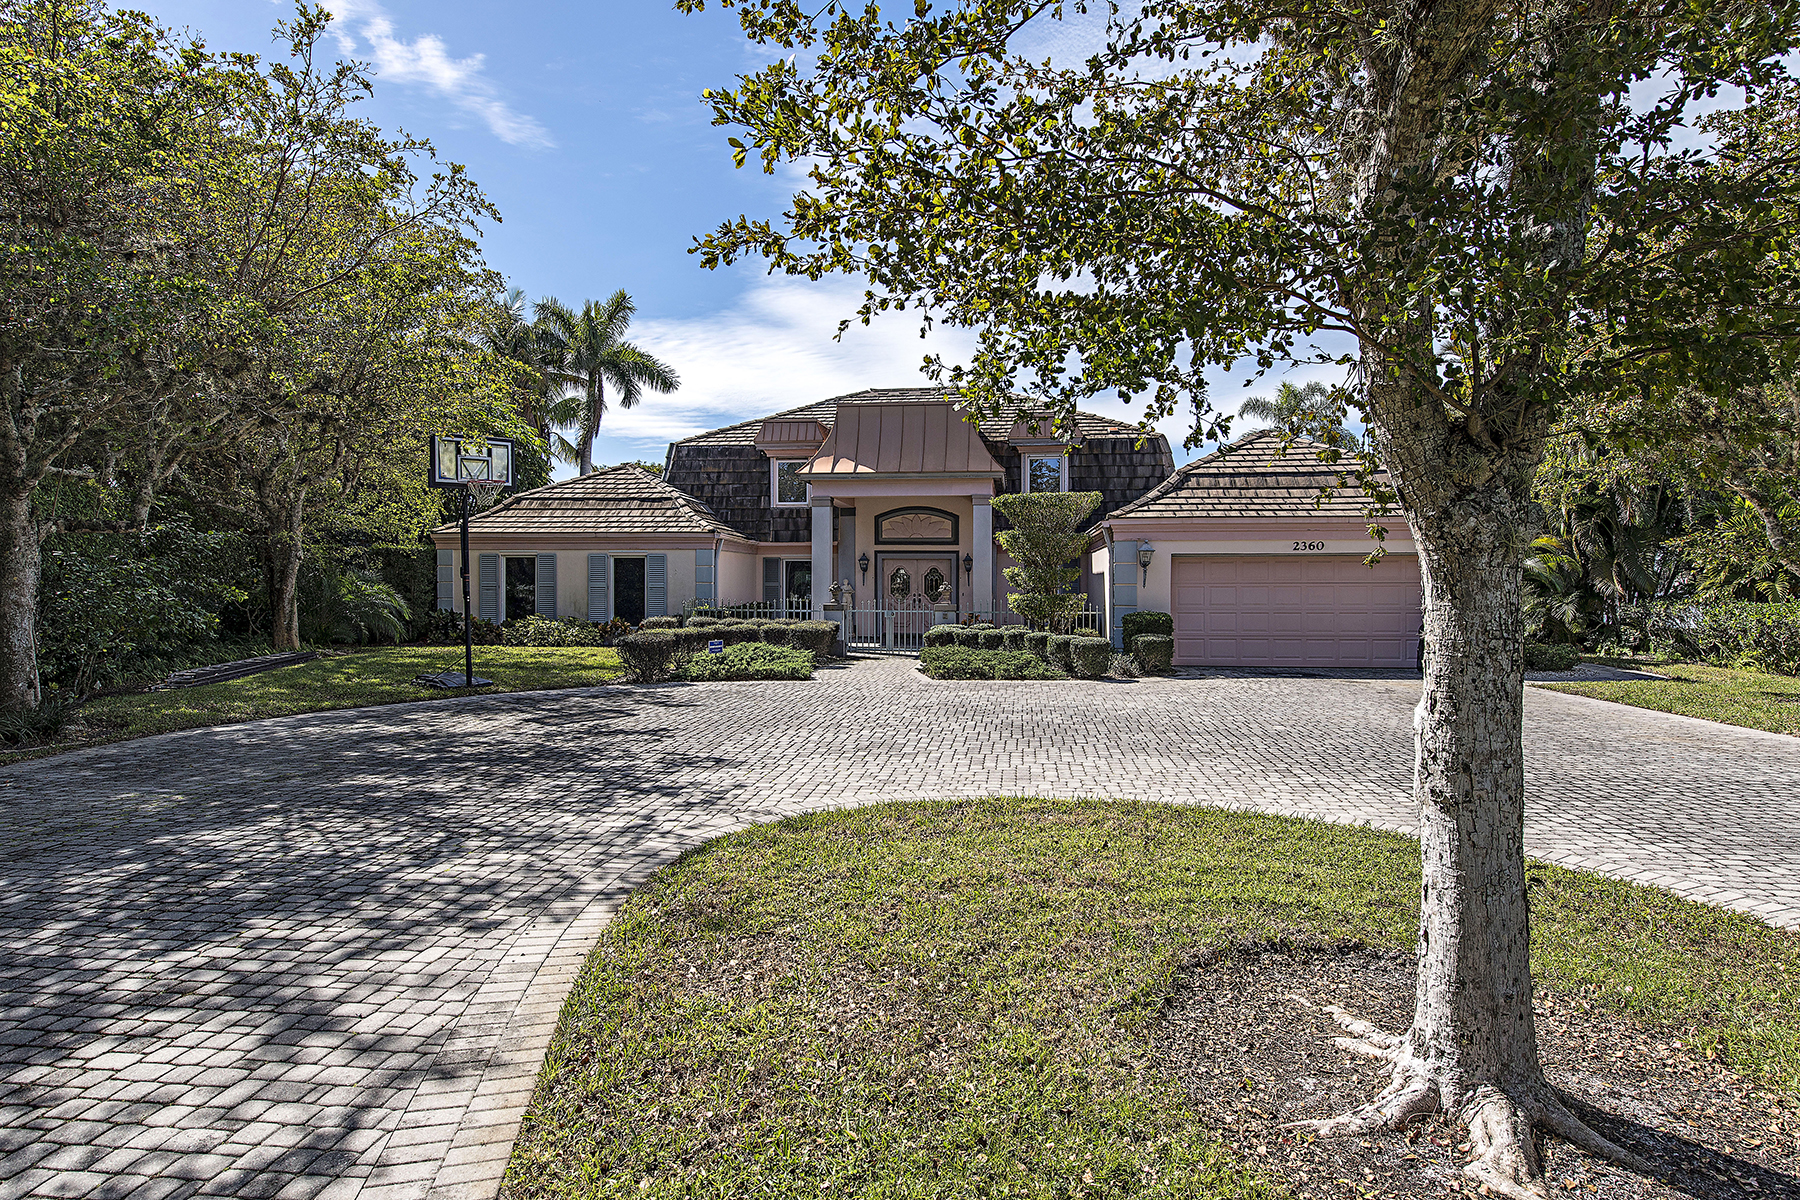 Single Family Home for Sale at Naples 2360 Kingfish Rd Naples, Florida, 34102 United States